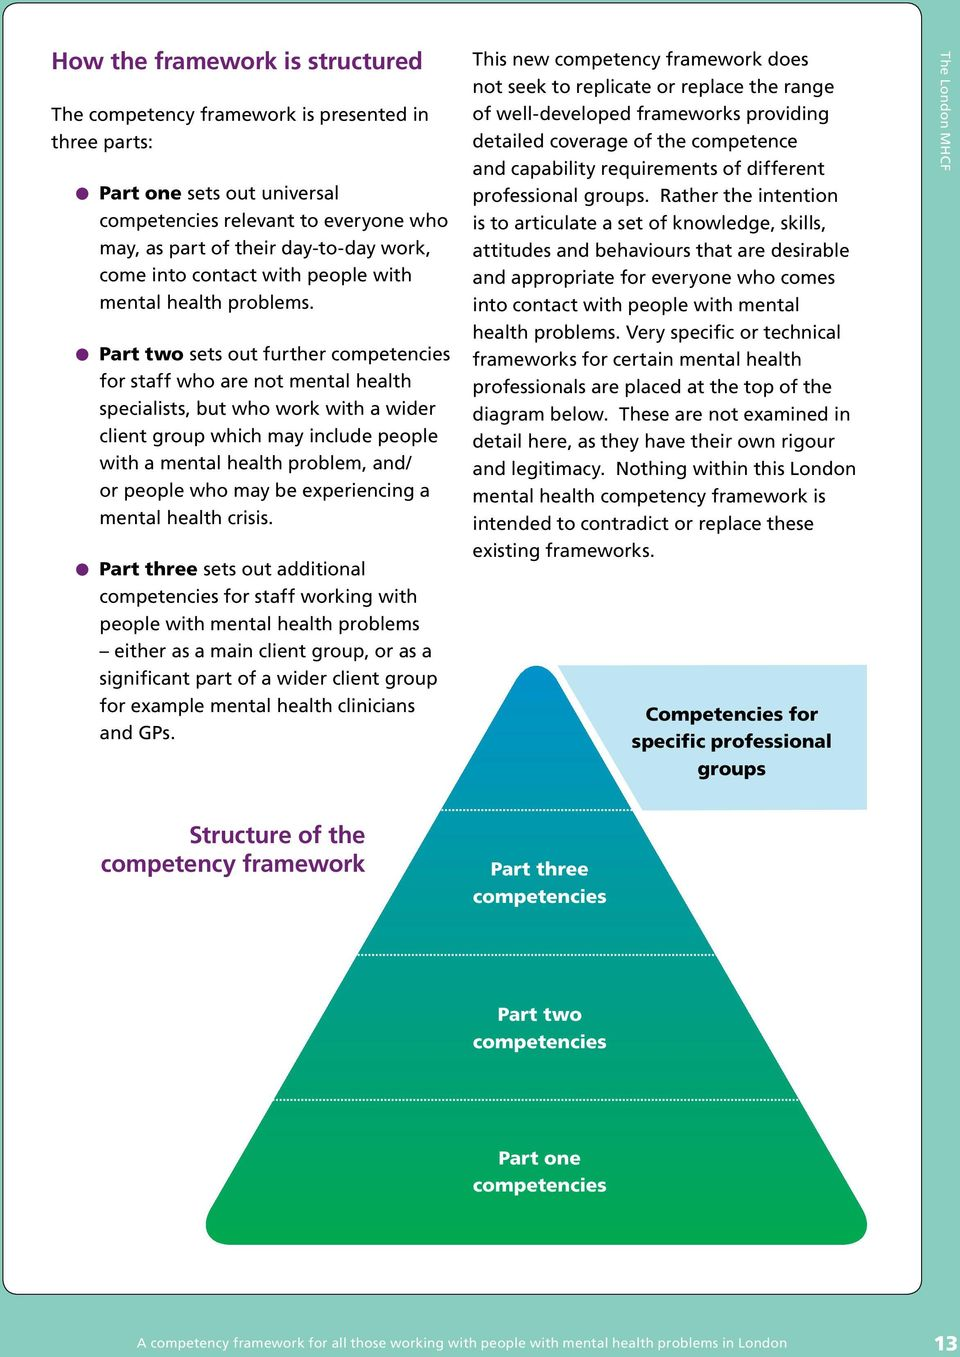 Part two sets out further competencies for staff who are not mental health specialists, but who work with a wider client group which may include people with a mental health problem, and/ or people